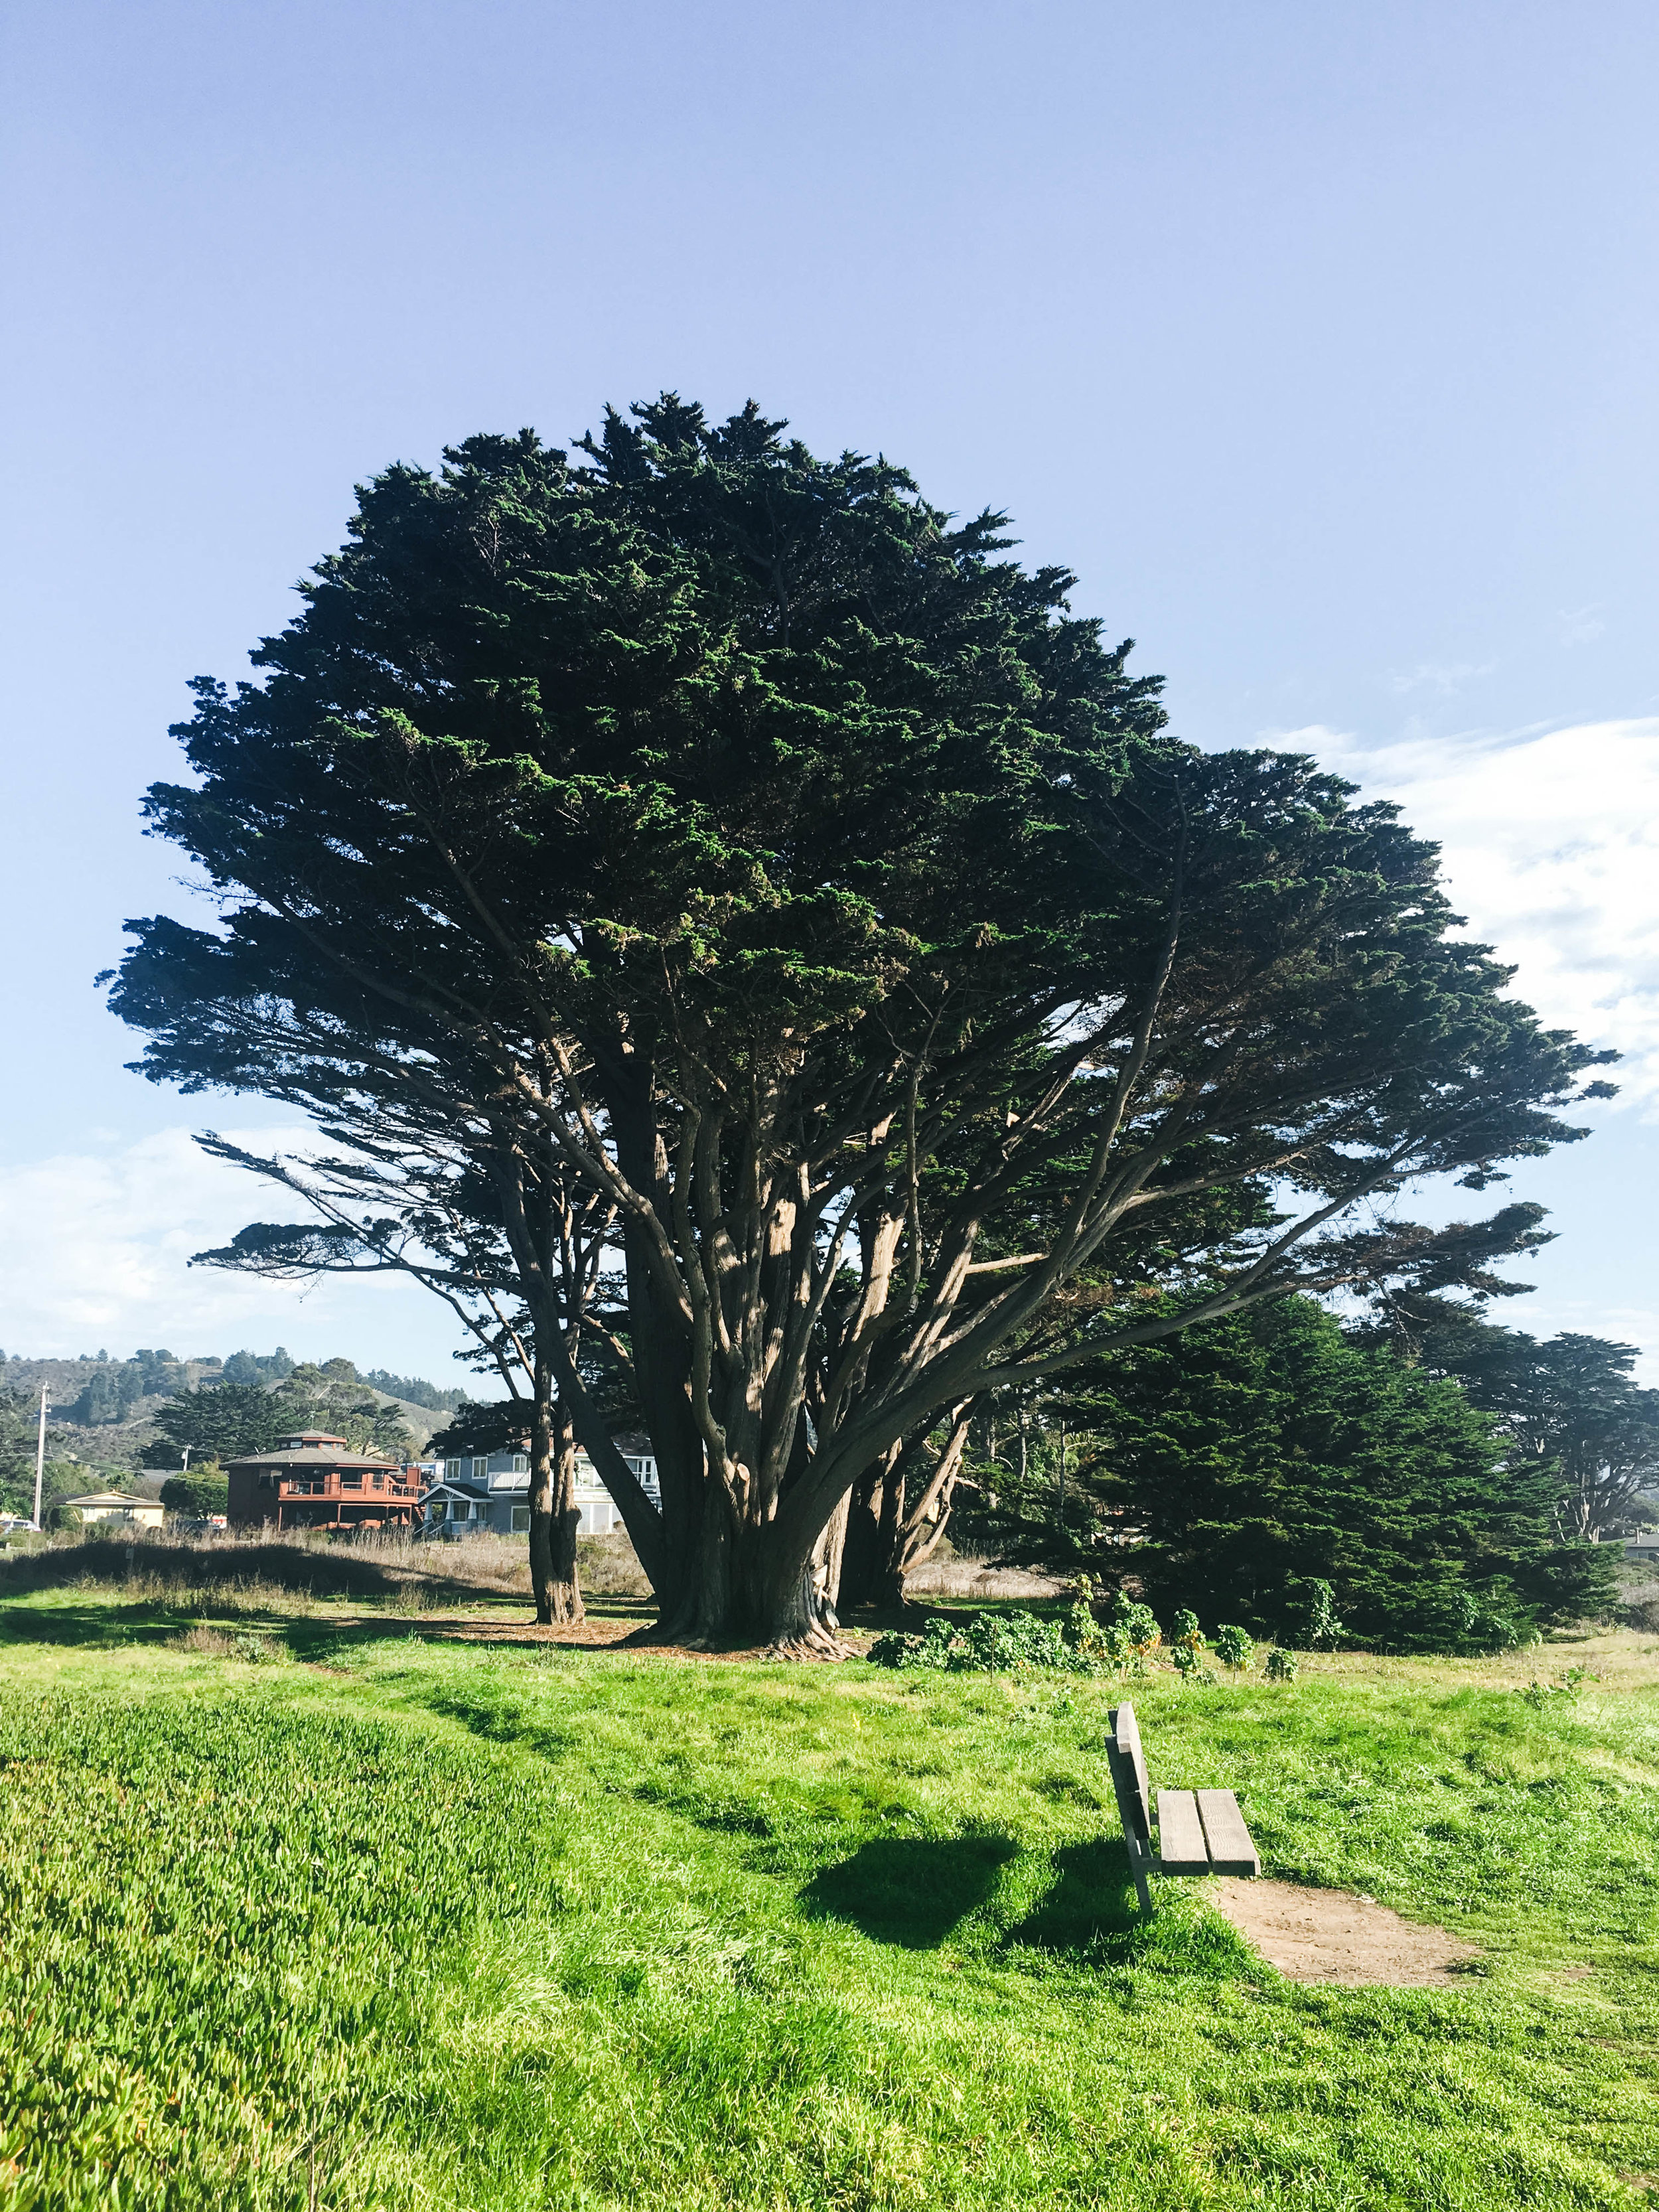 "<p style=""font-family:brandon-grotesque;font-weight:500; font-size:11px; text-center:left; color:light grey;letter-spacing: 1px"">OCTOBER 22, 2017 • PICNIC • � Santa Cruz, CA</p>"